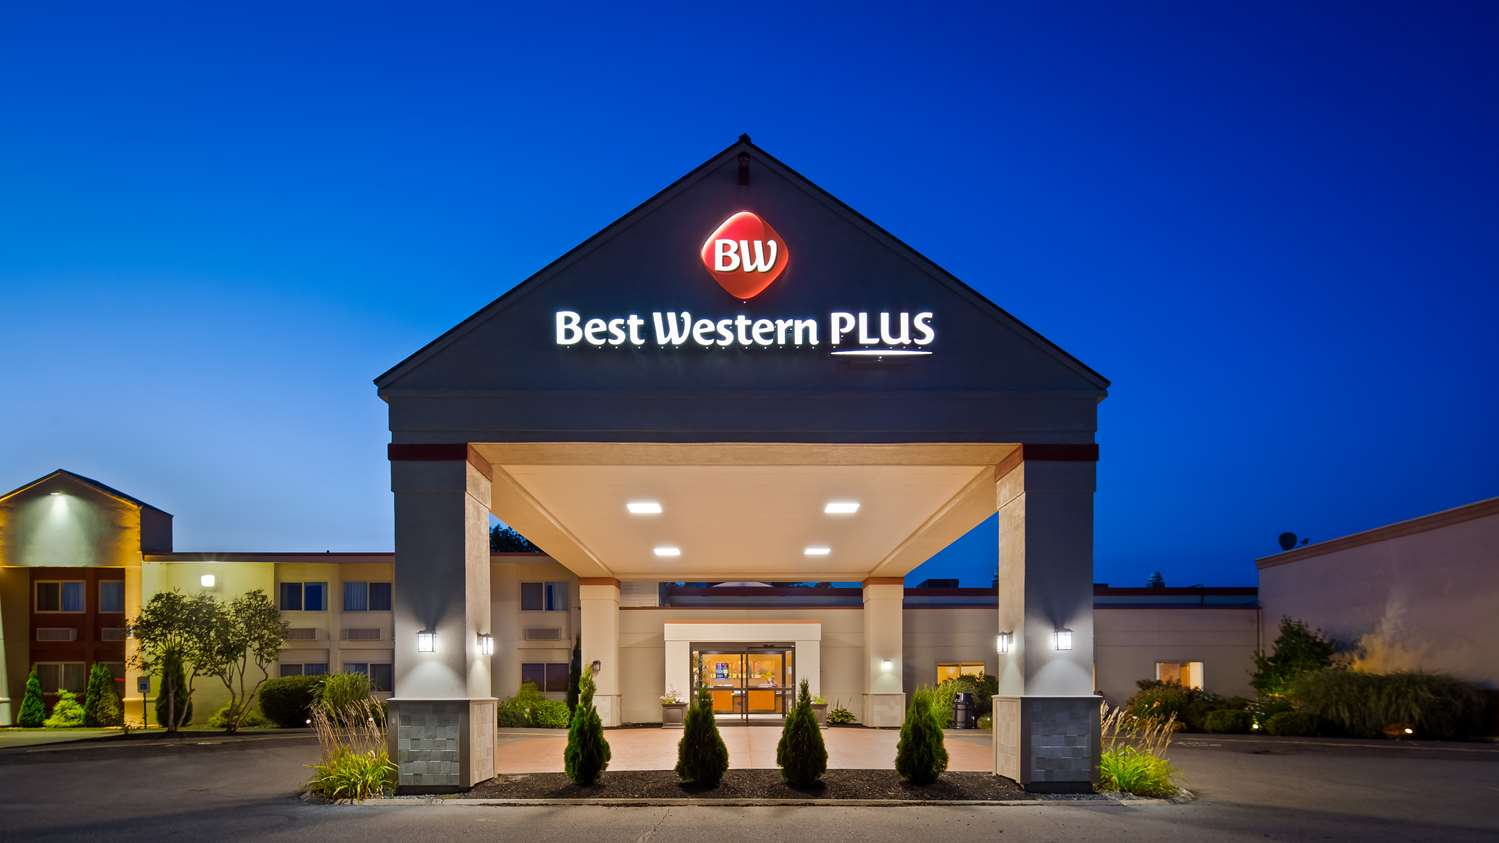 Best Western, Augusta Civic Center click to open link